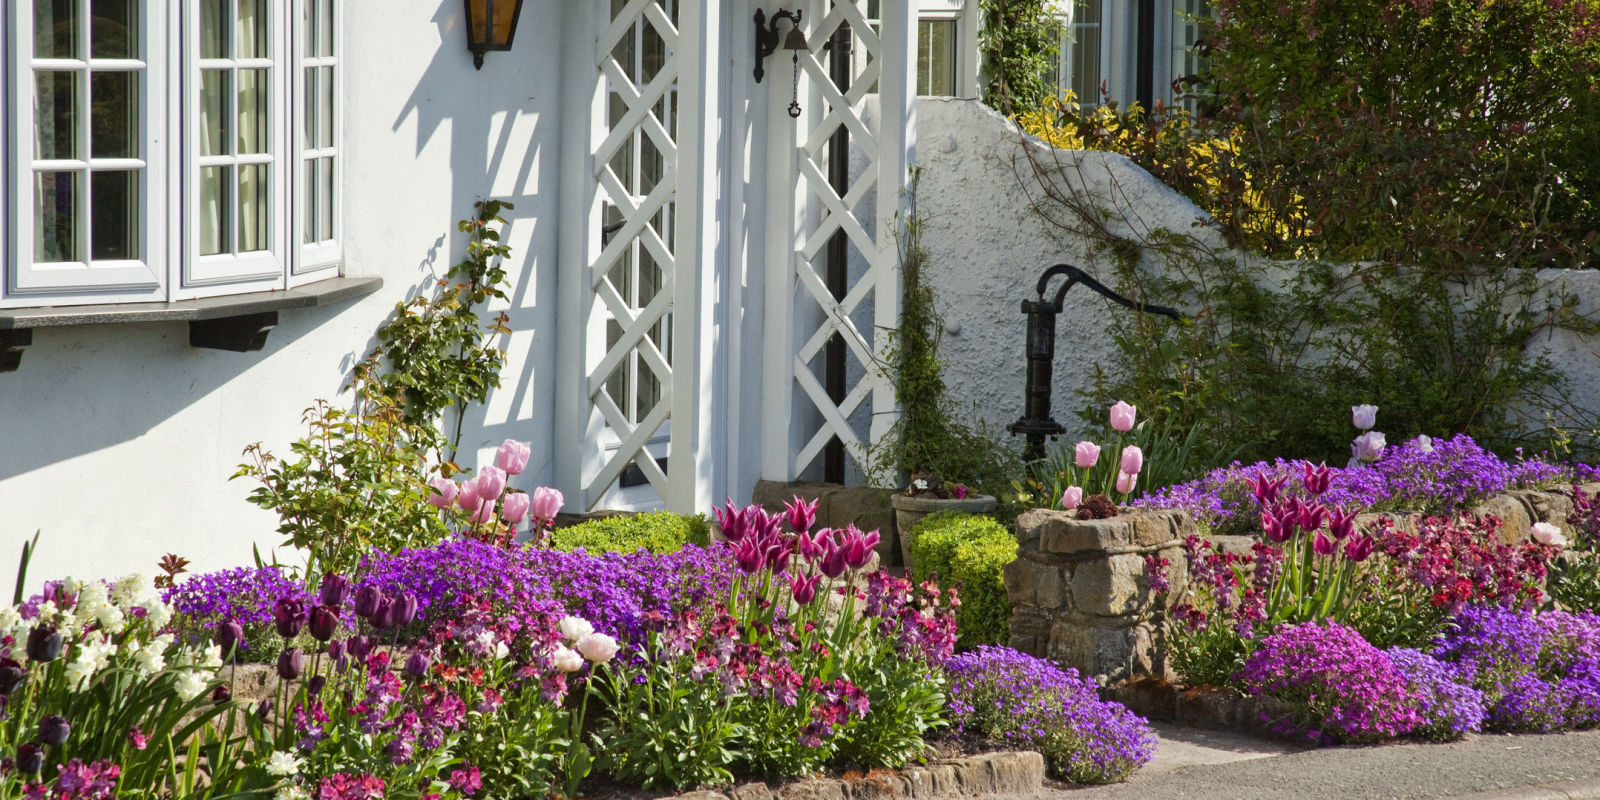 7 golden rules to give your front garden the wow factor for Front garden plant ideas